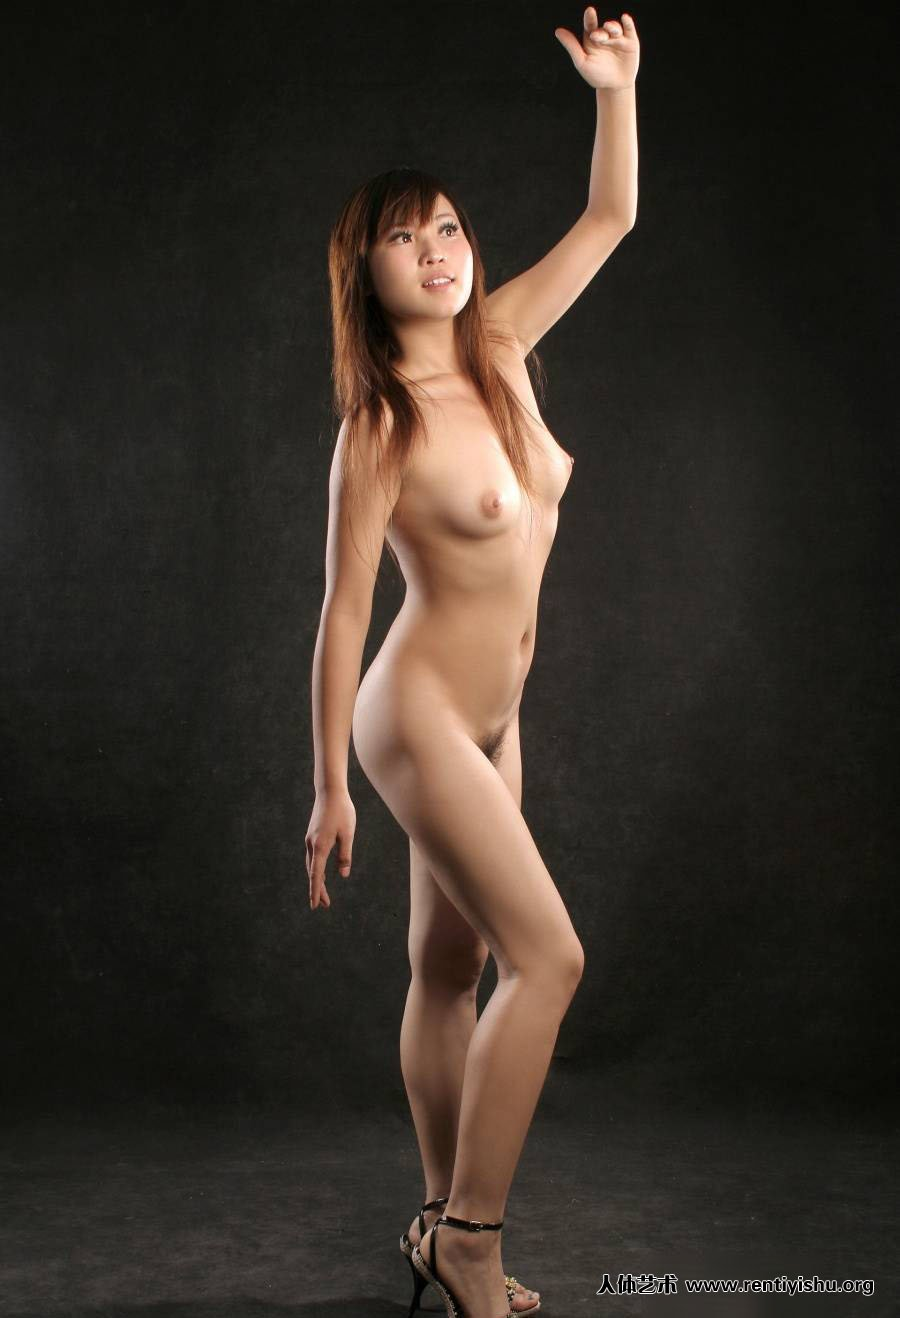 bo-anh-nude-so-9-9